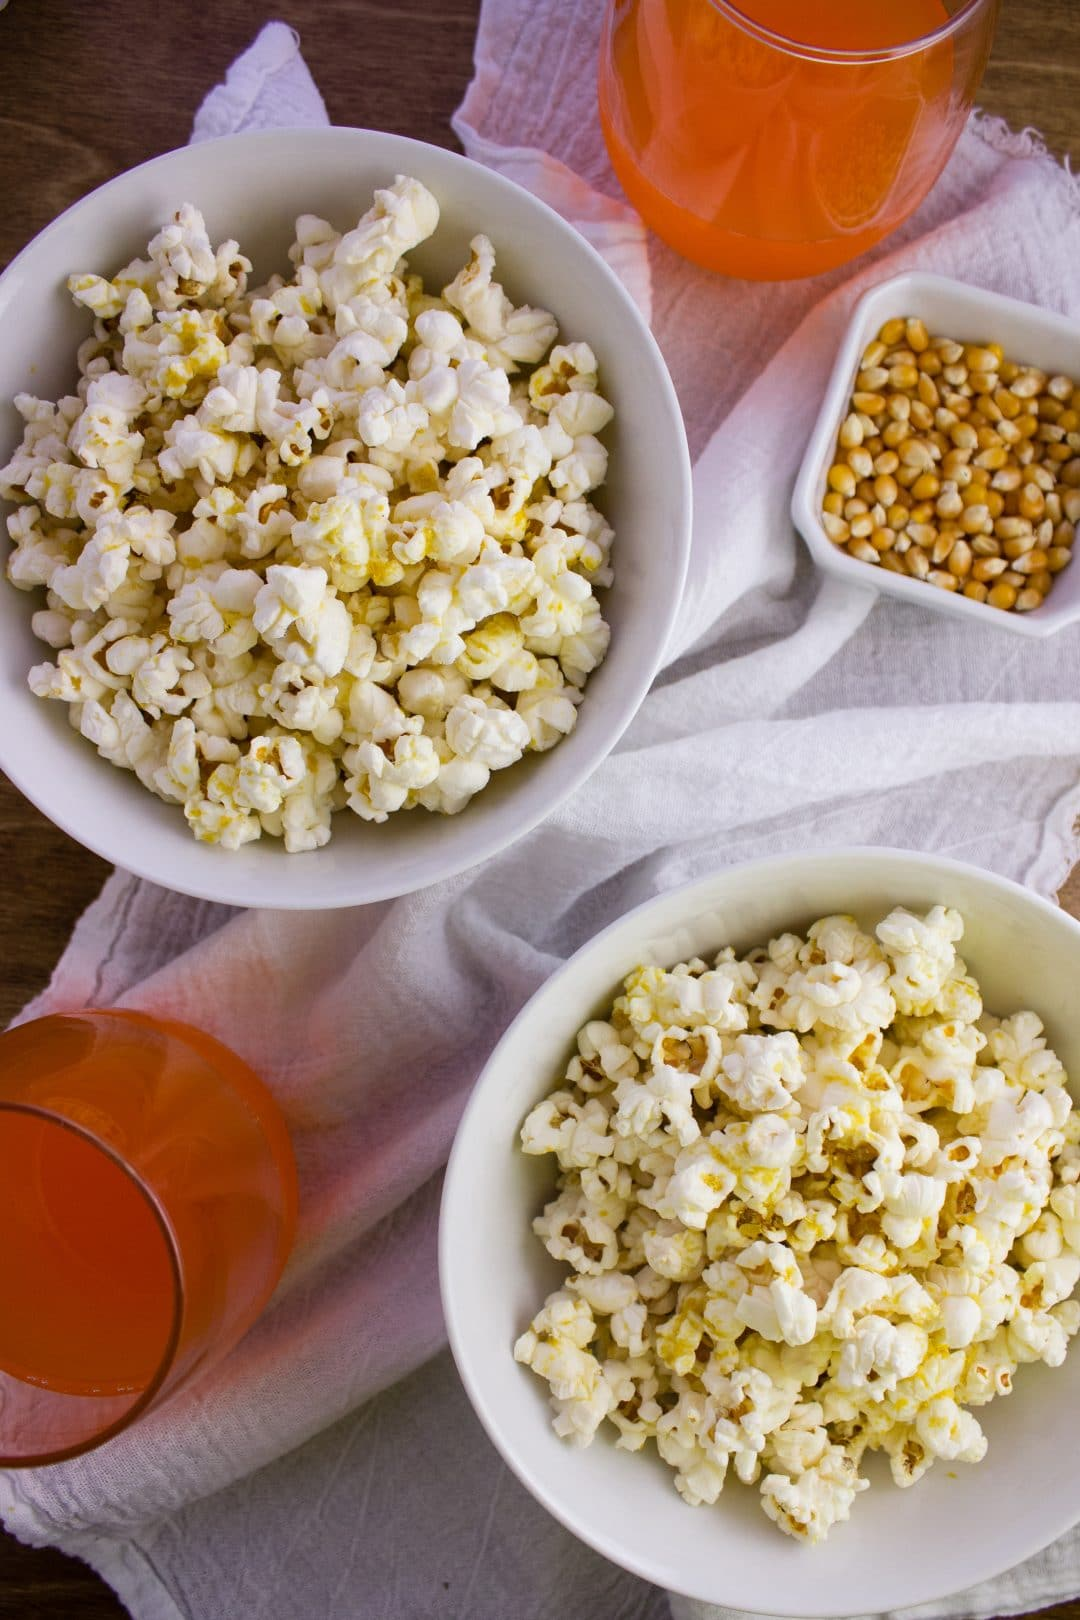 Brown Bag Popcorn - Make your own version of microwave popcorn using simple ingredients in a brown paper lunch bag. A quick healthy snack! simplylakita.com #popcorn #snacks